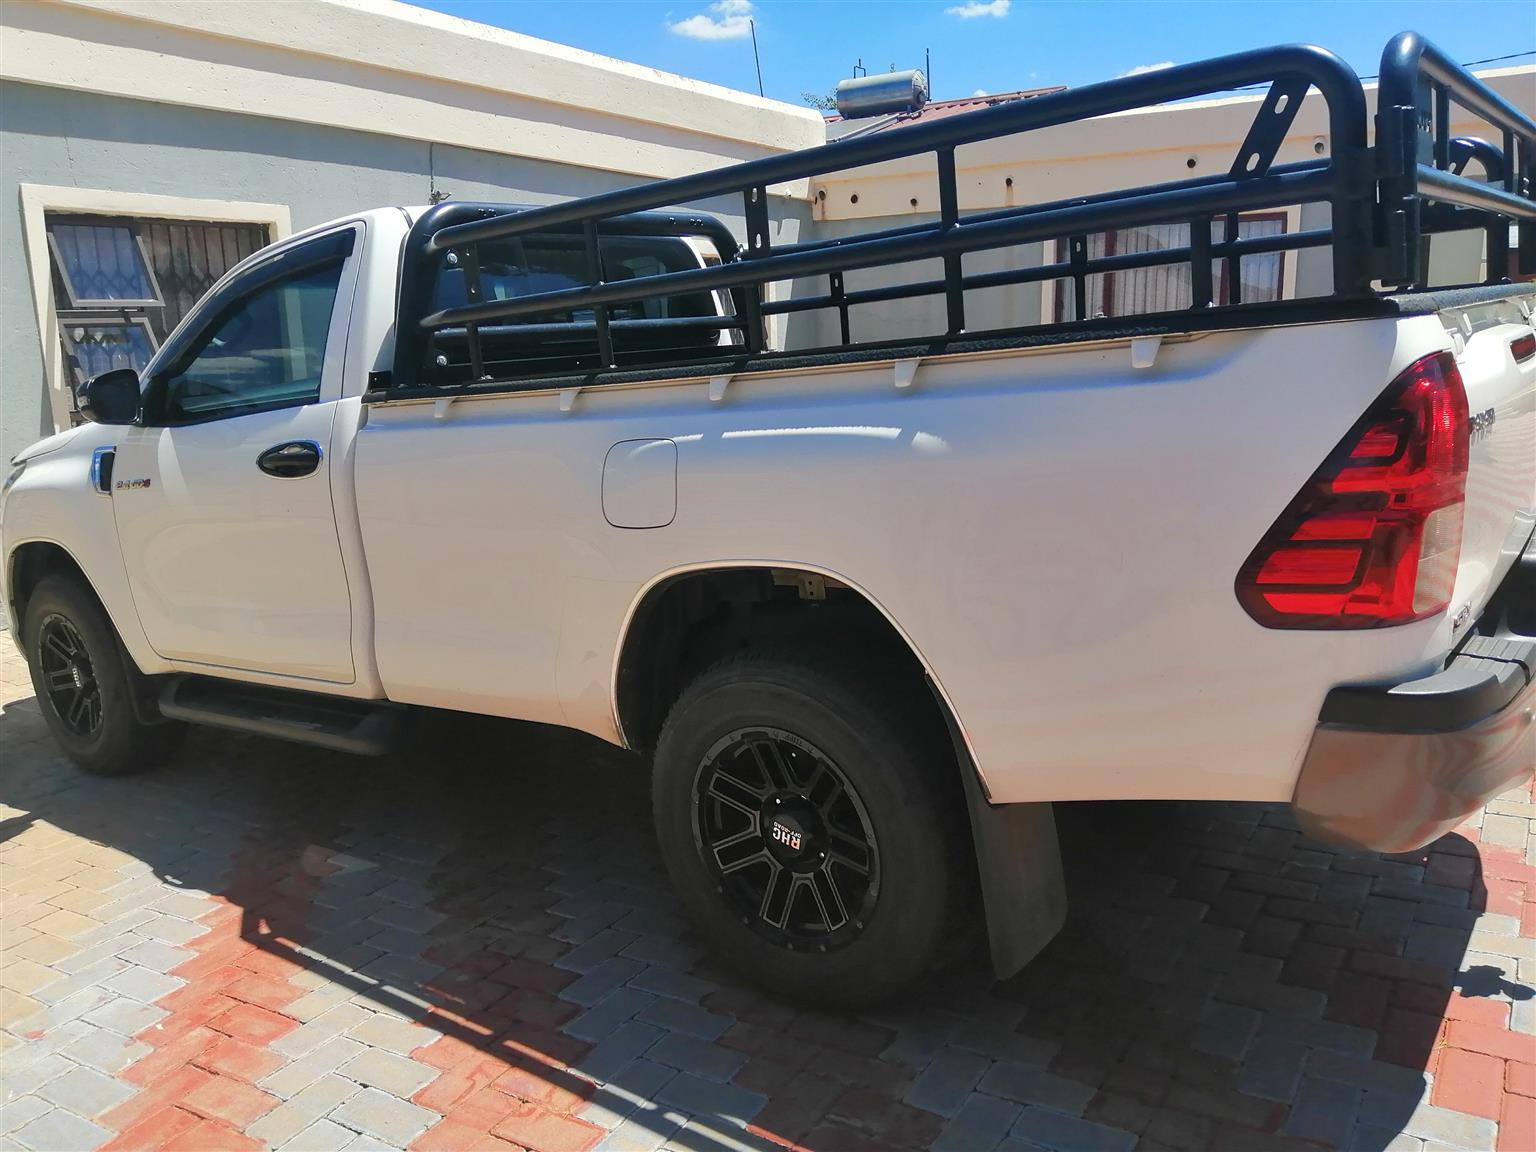 I am selling canvas frame for Toyota hilux 2019 model